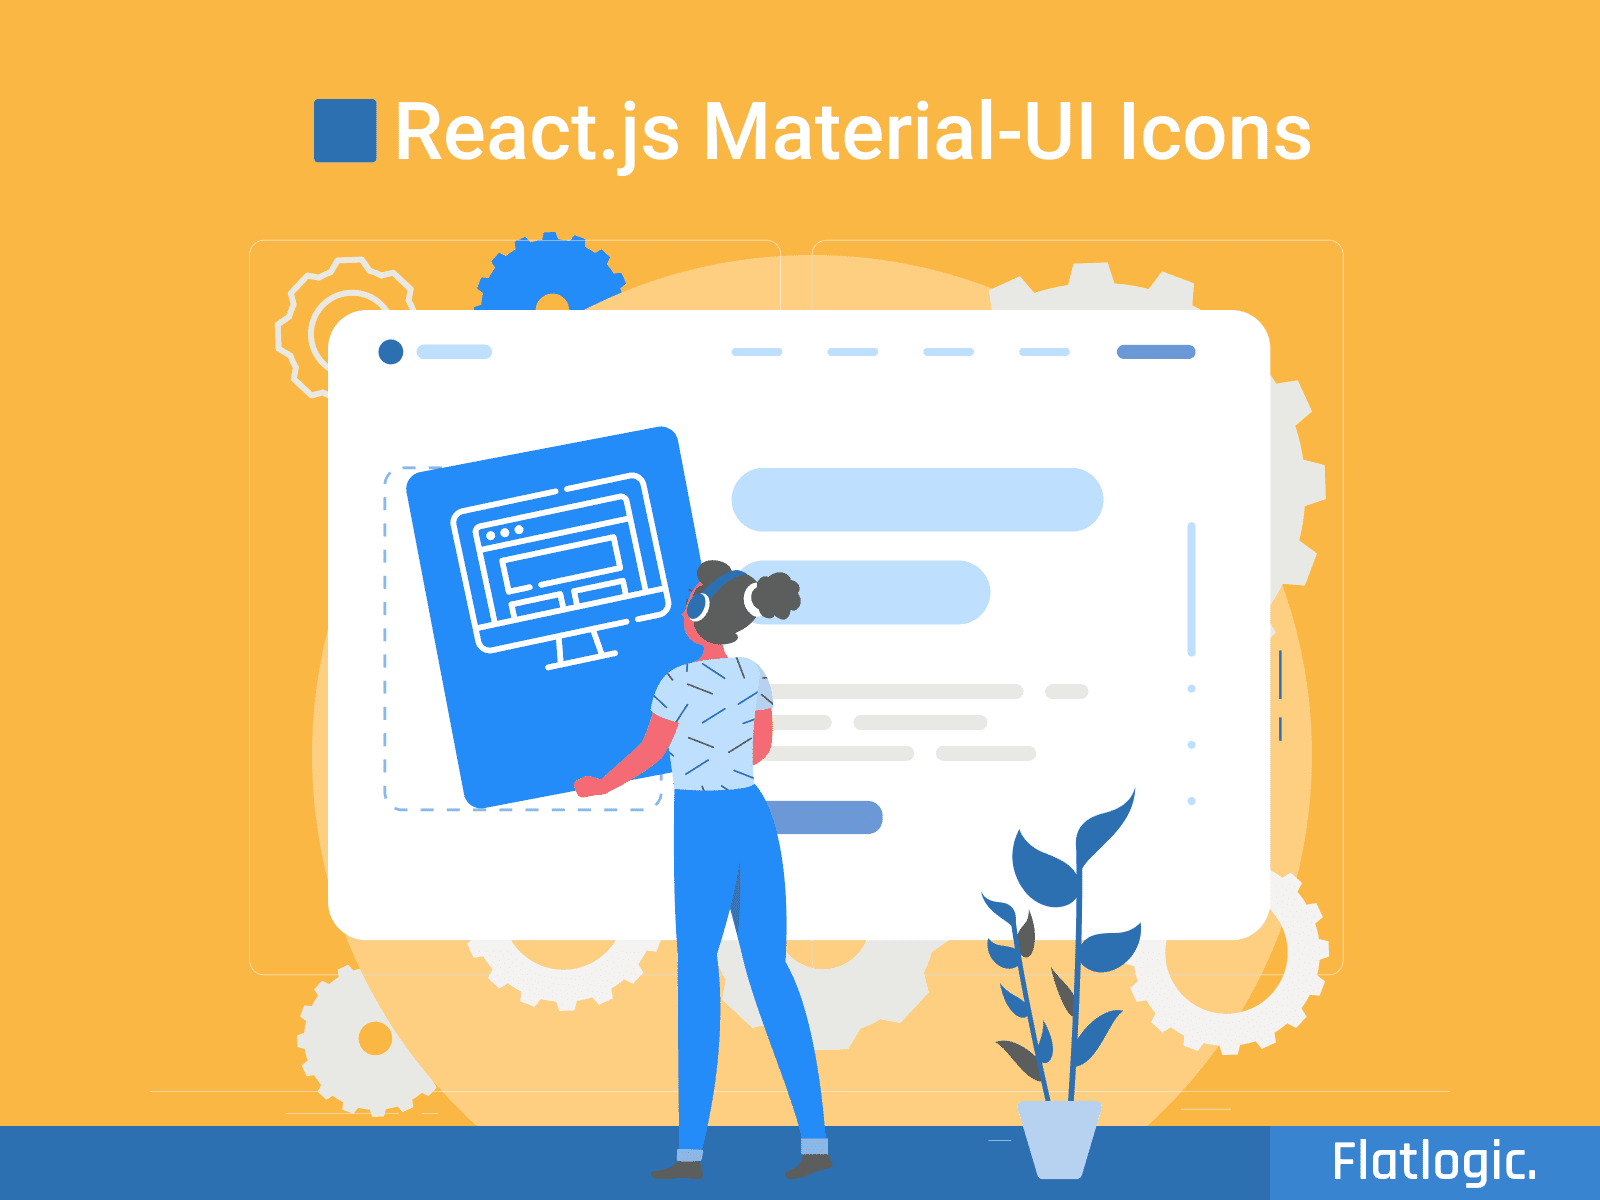 How to Use Material UI Icons In React